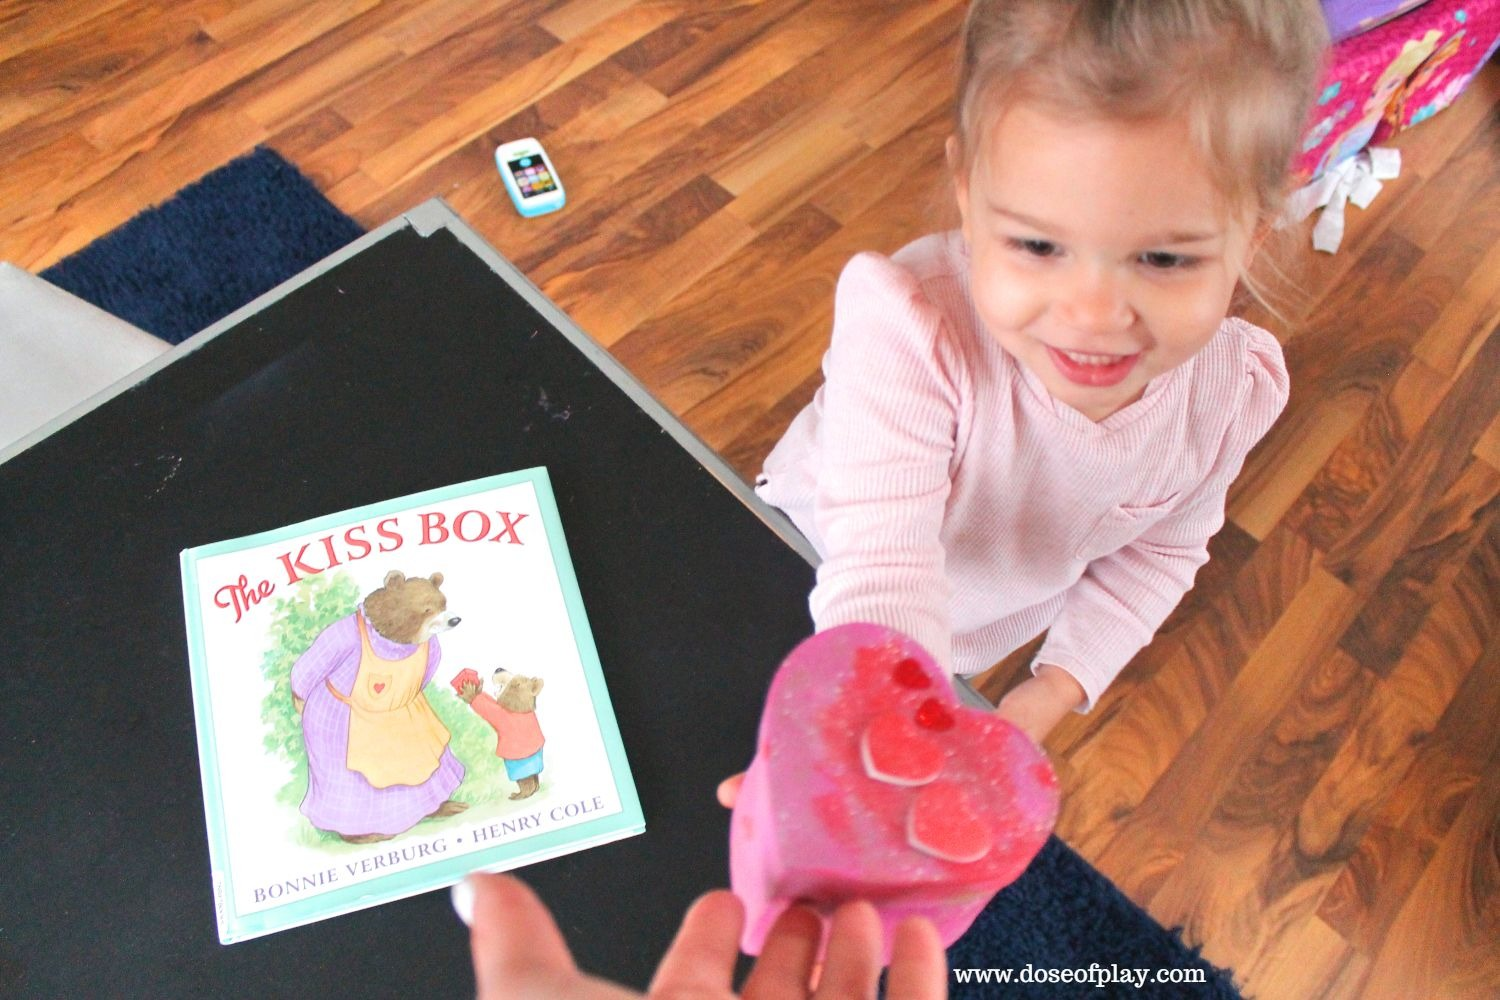 This is a great book and activity to help (toddlers, preschool kids) cope with separation anxiety from a parent or caregiver! #separationanxiety #fostercoping #doseofplay #therapeutic activity #childlife #childlifespecialist #valentinesdaycraft #valentinesdayactivity #thekissbox #kisses